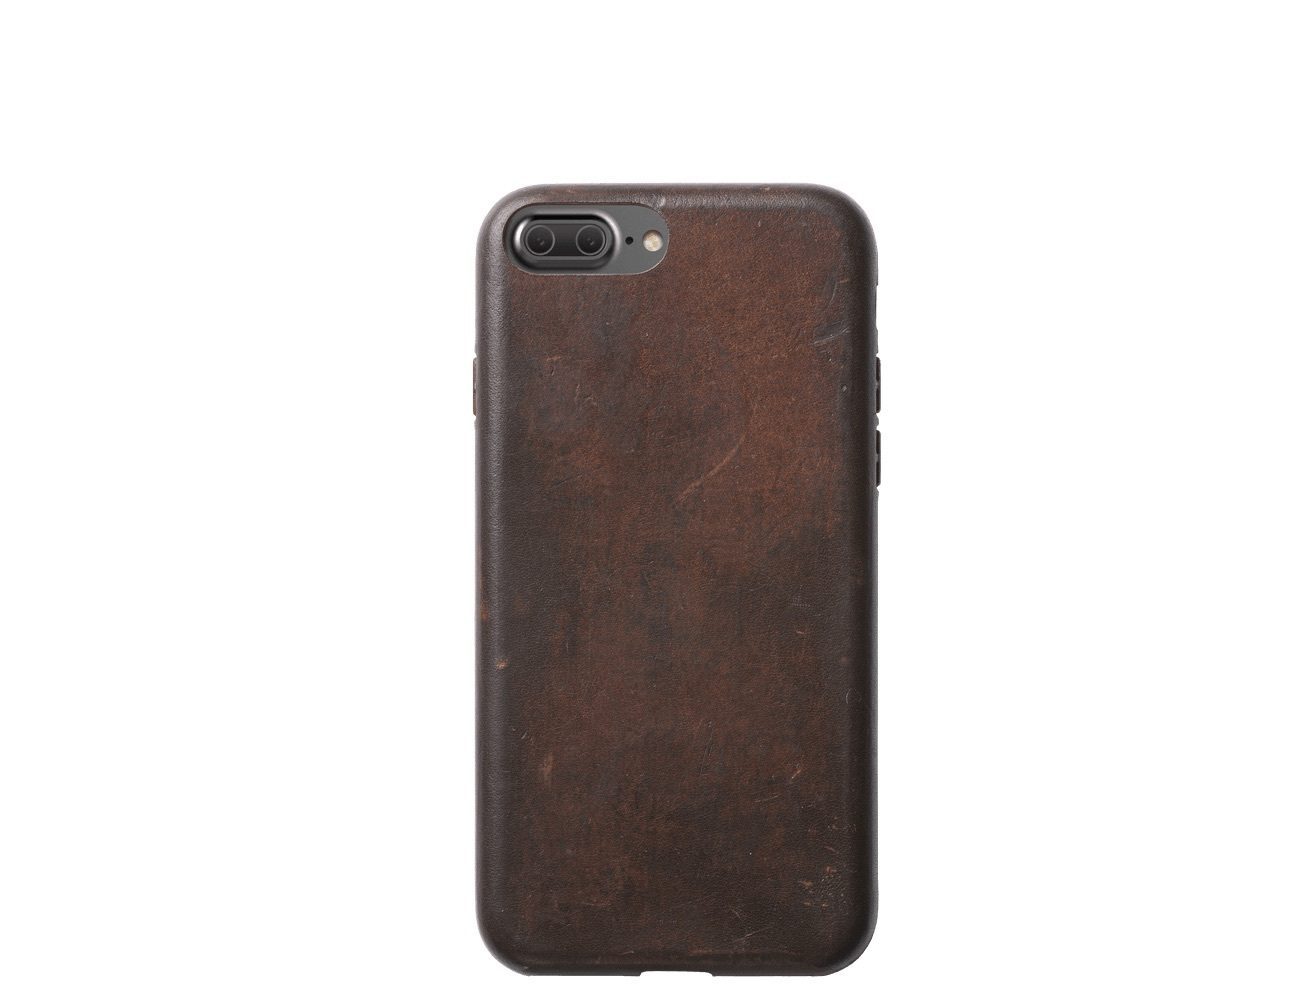 Leather Case for iPhone 7 by Nomad